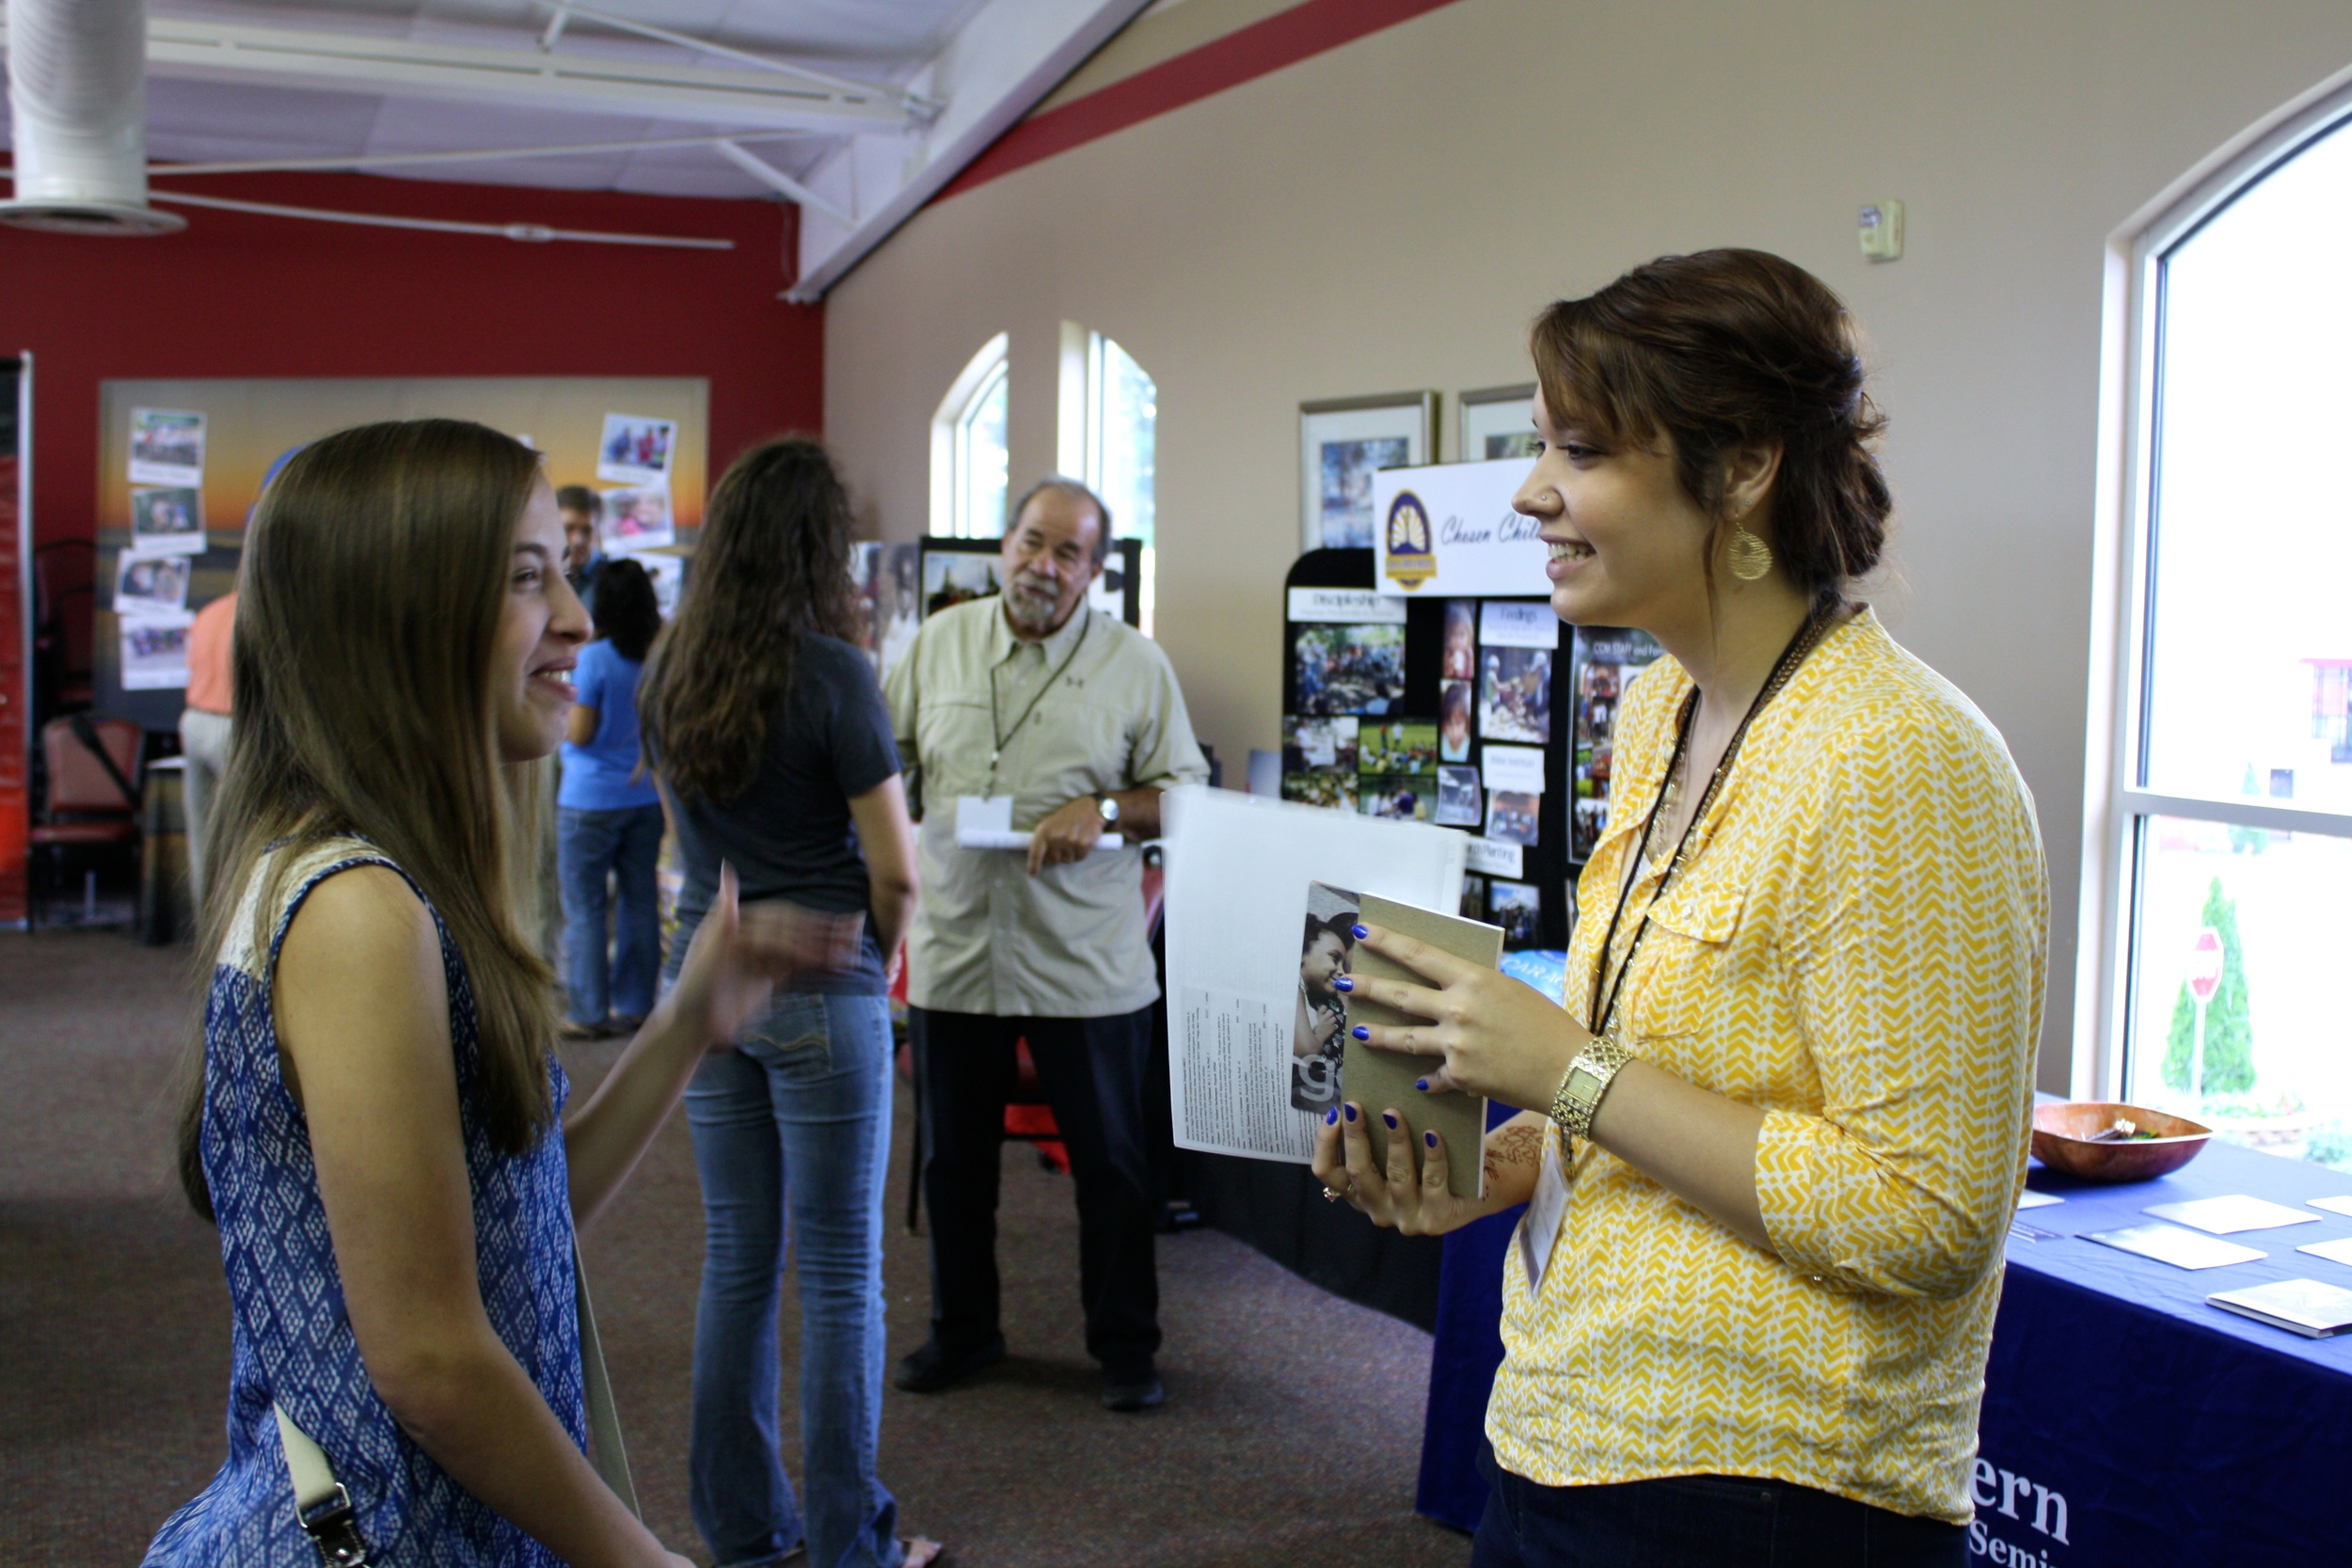 A student and a missionary laugh together during NGU's global missions week September 8-10.